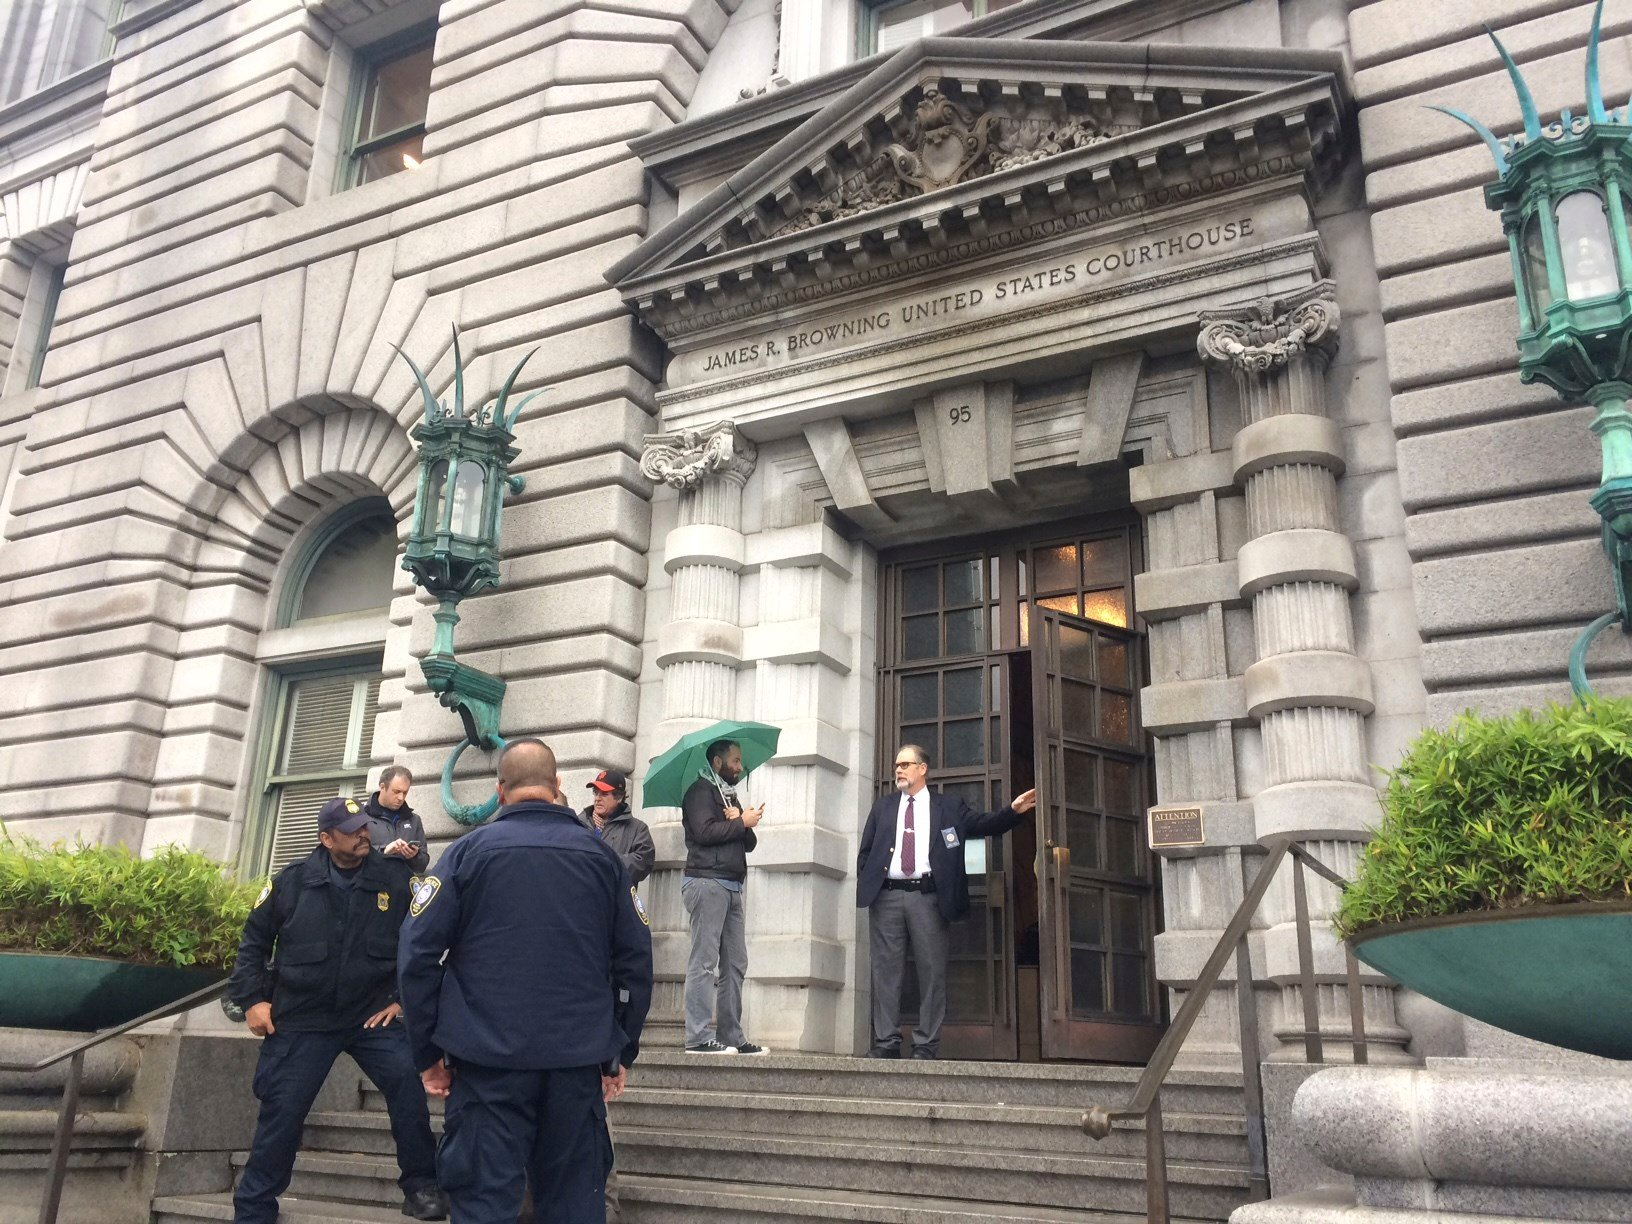 Security officers are seen outside the 9th U.S. Circuit Court of Appeals building in San Francisco on Thursday, Feb. 9, 2017